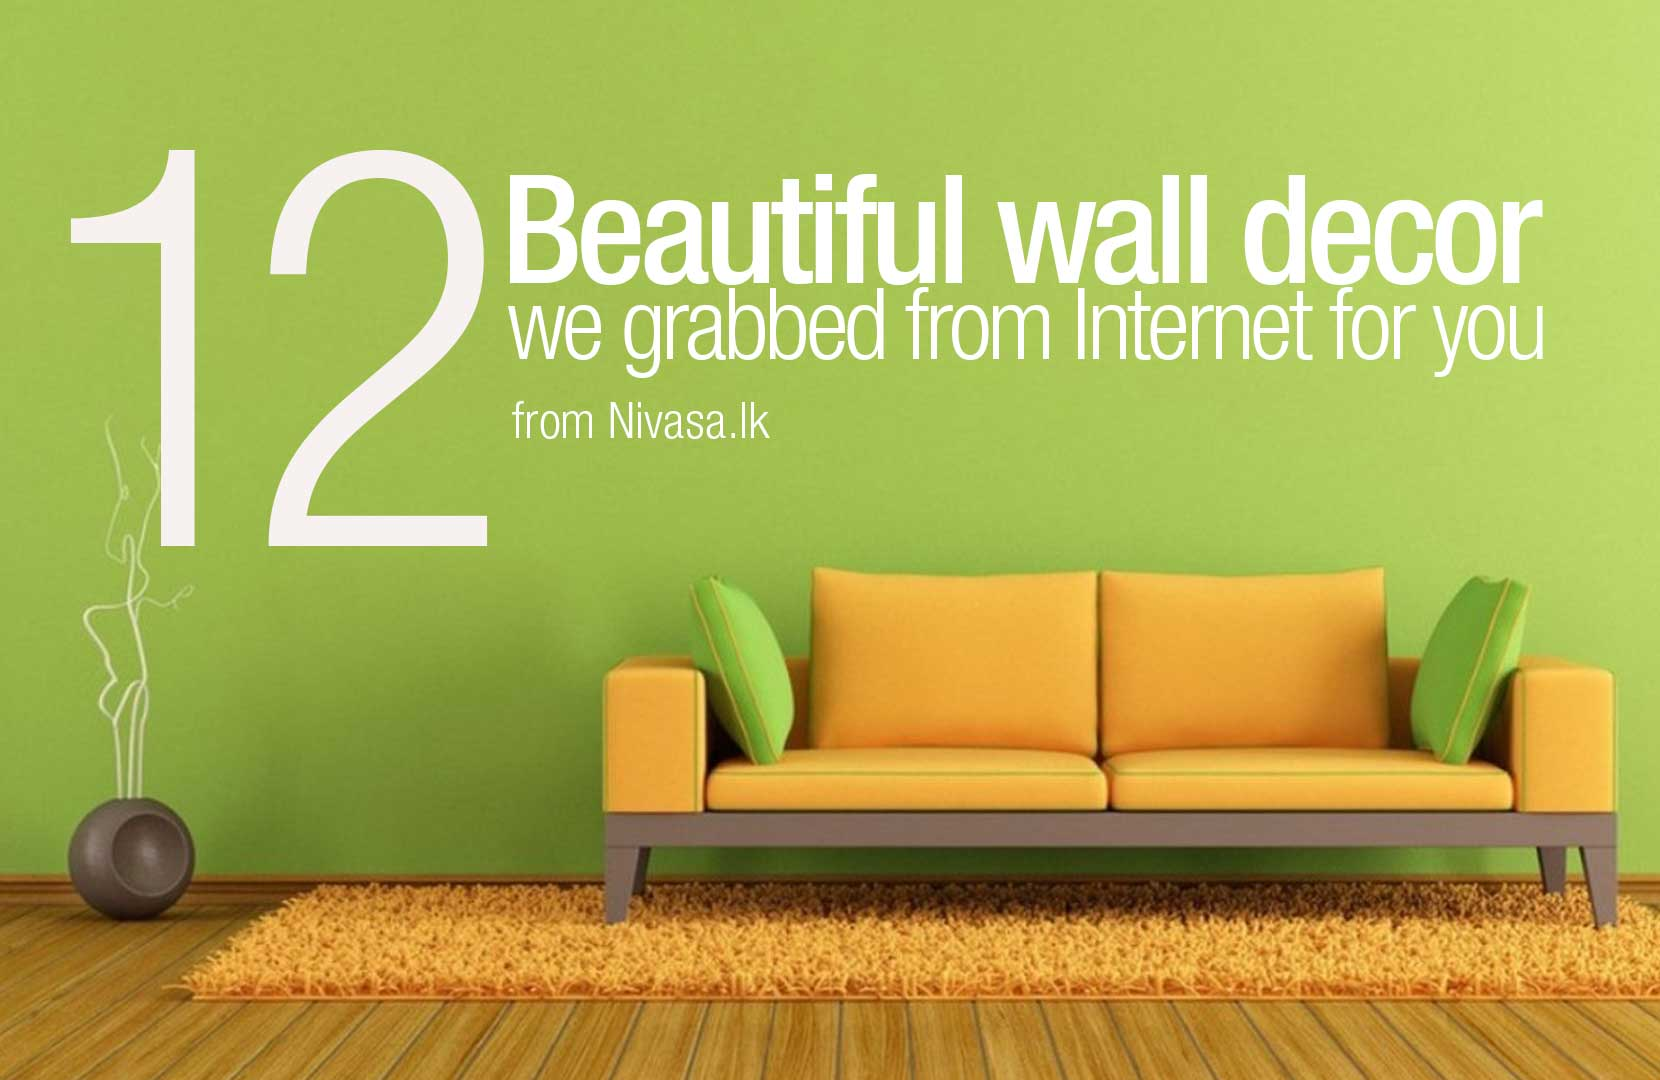 12 Beautiful wall decor we grabbed from Internet for you